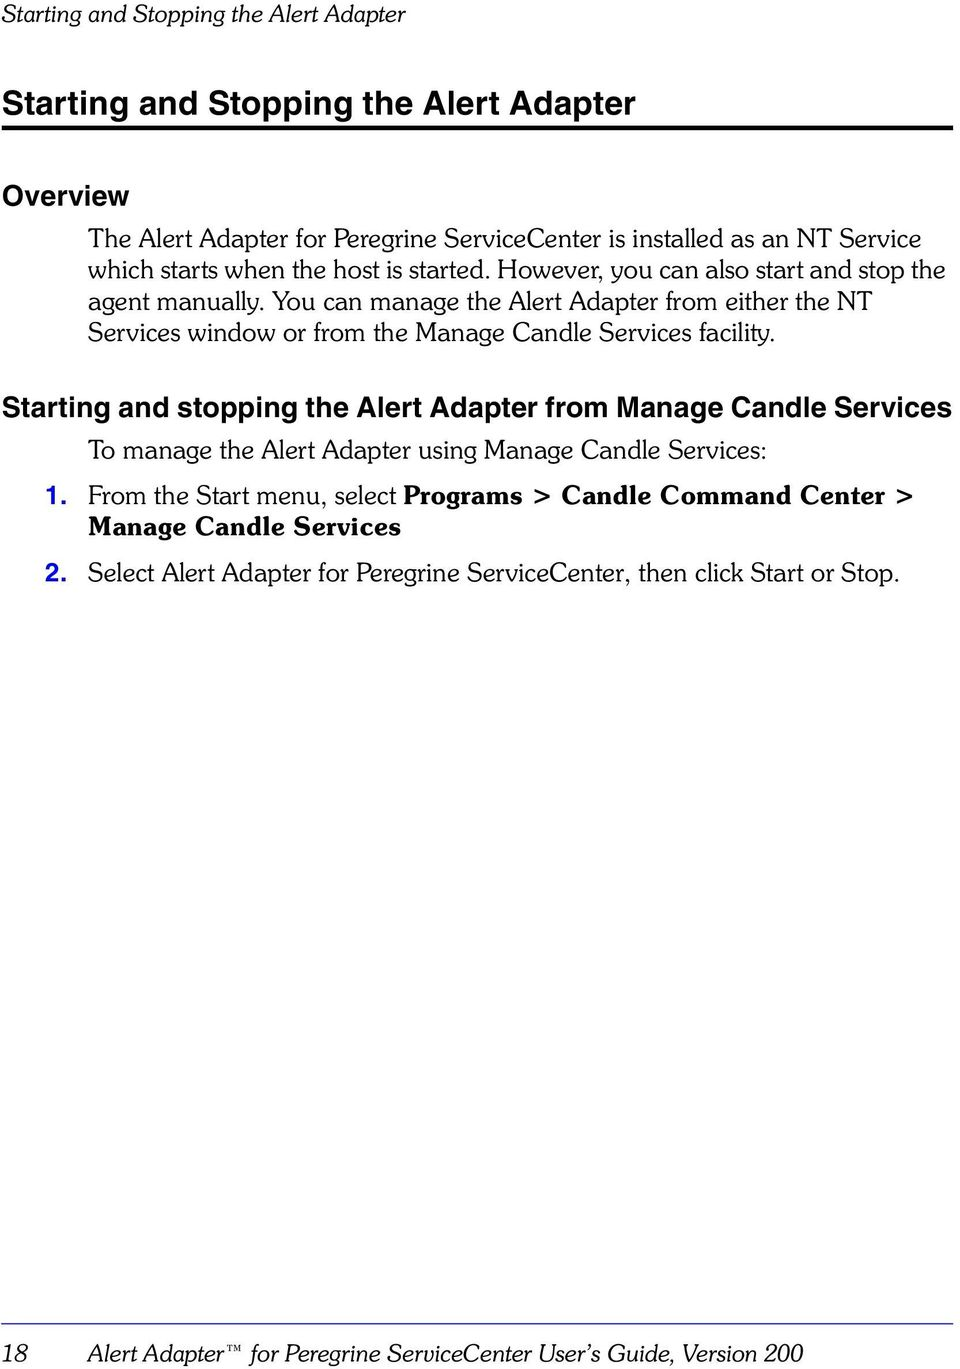 You can manage the Alert Adapter from either the NT Services window or from the Manage Candle Services facility.